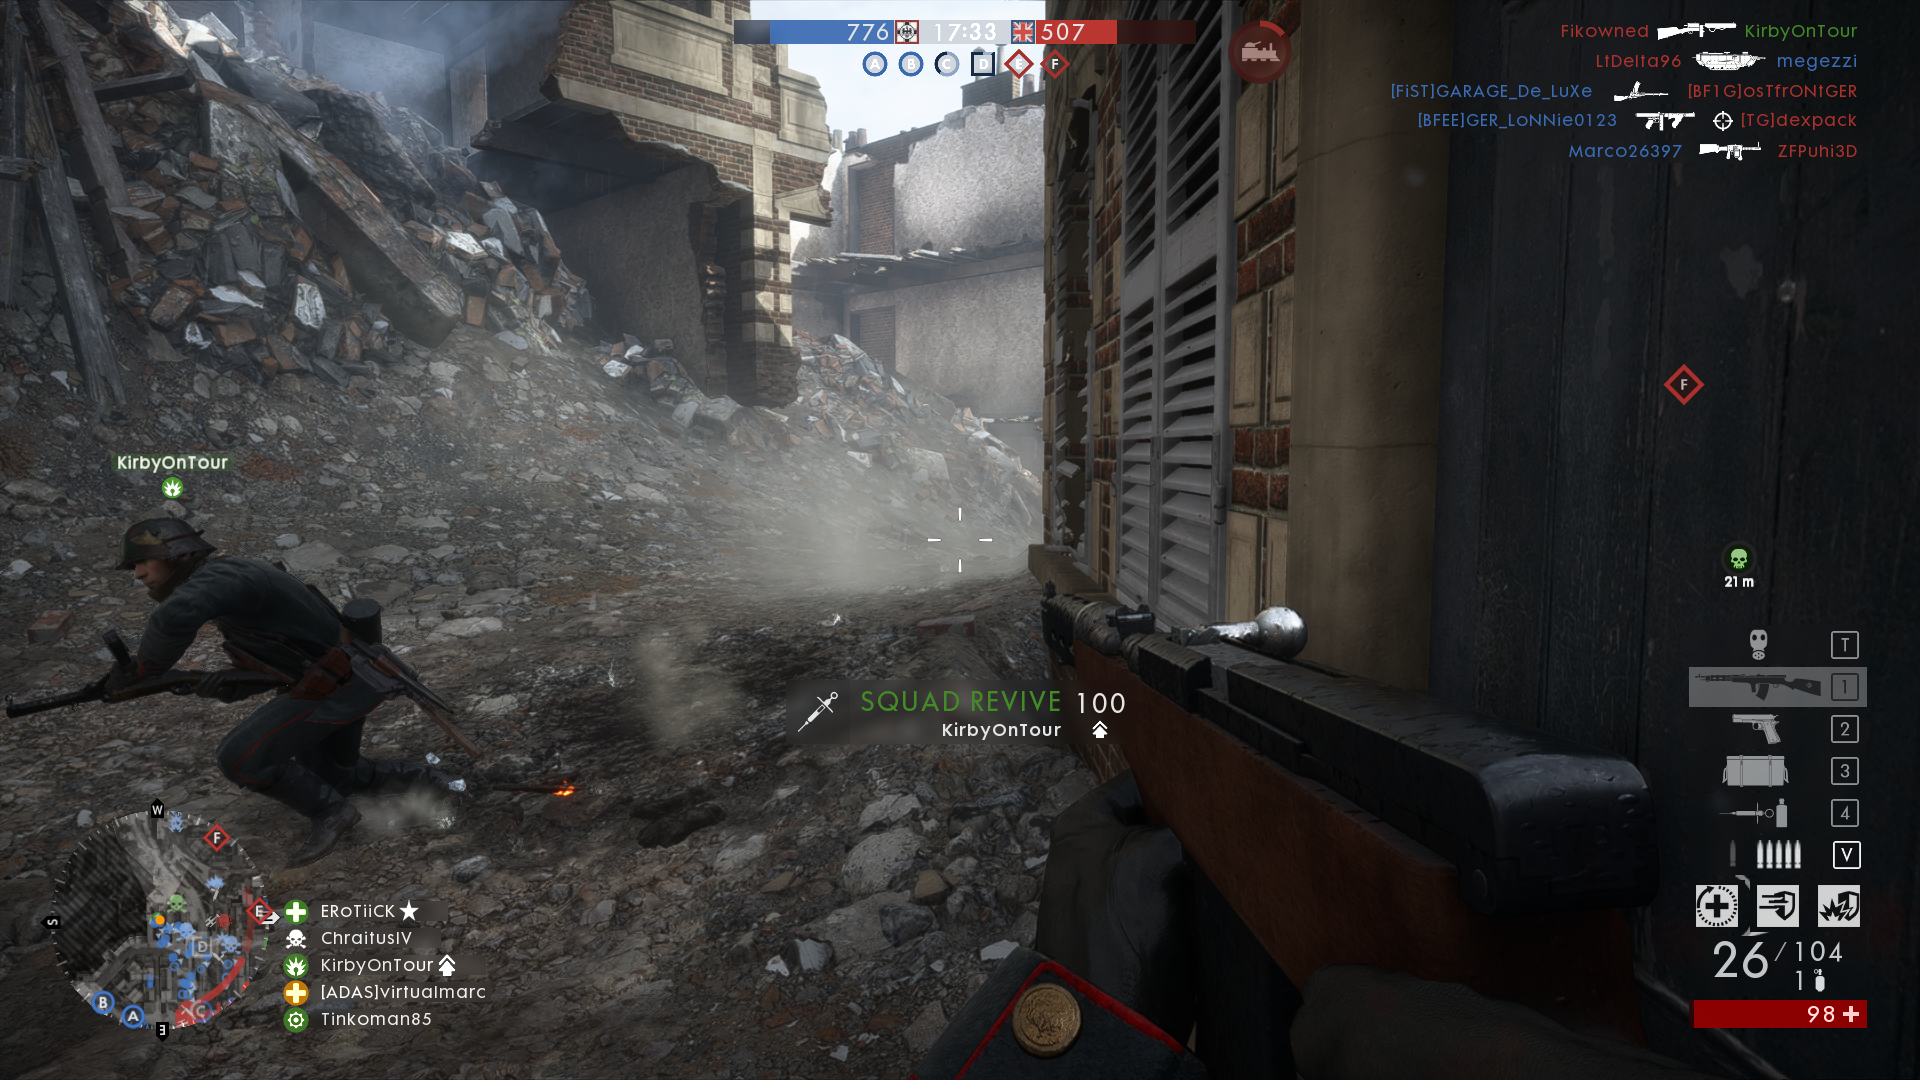 Battlefield1Screenshot2018052320282212030b4.png